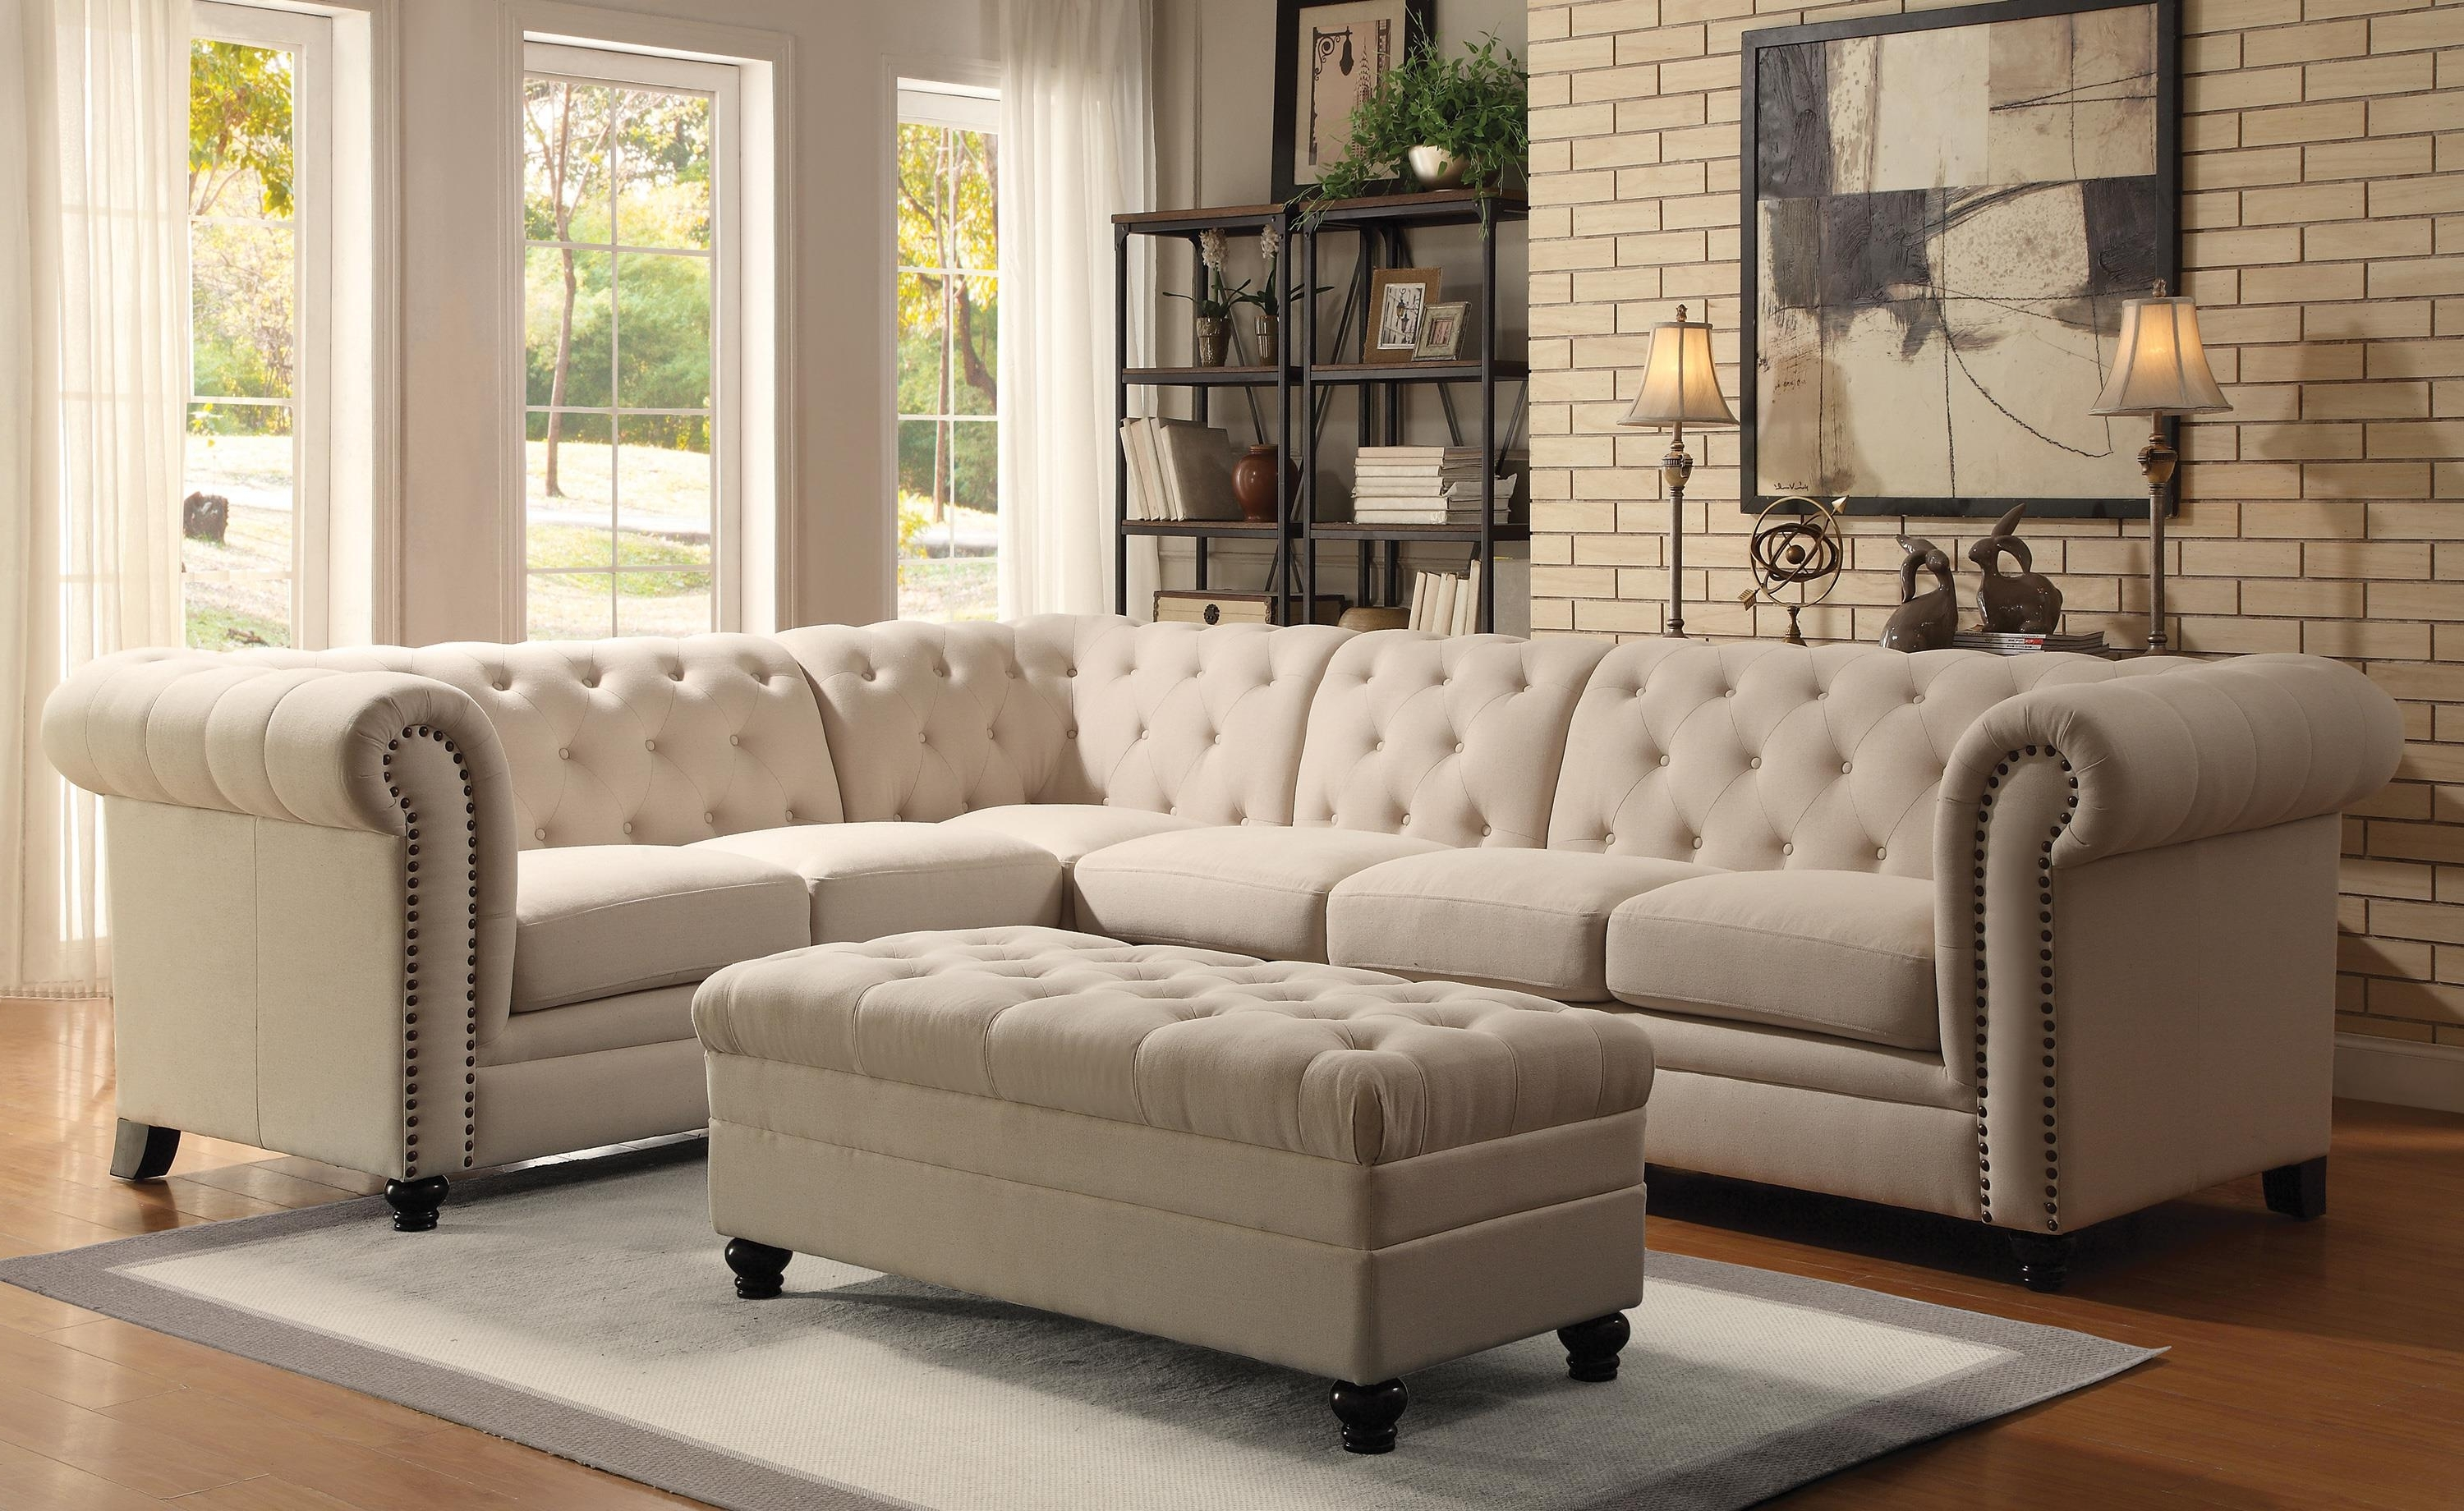 20 collection of tufted sectional sofas